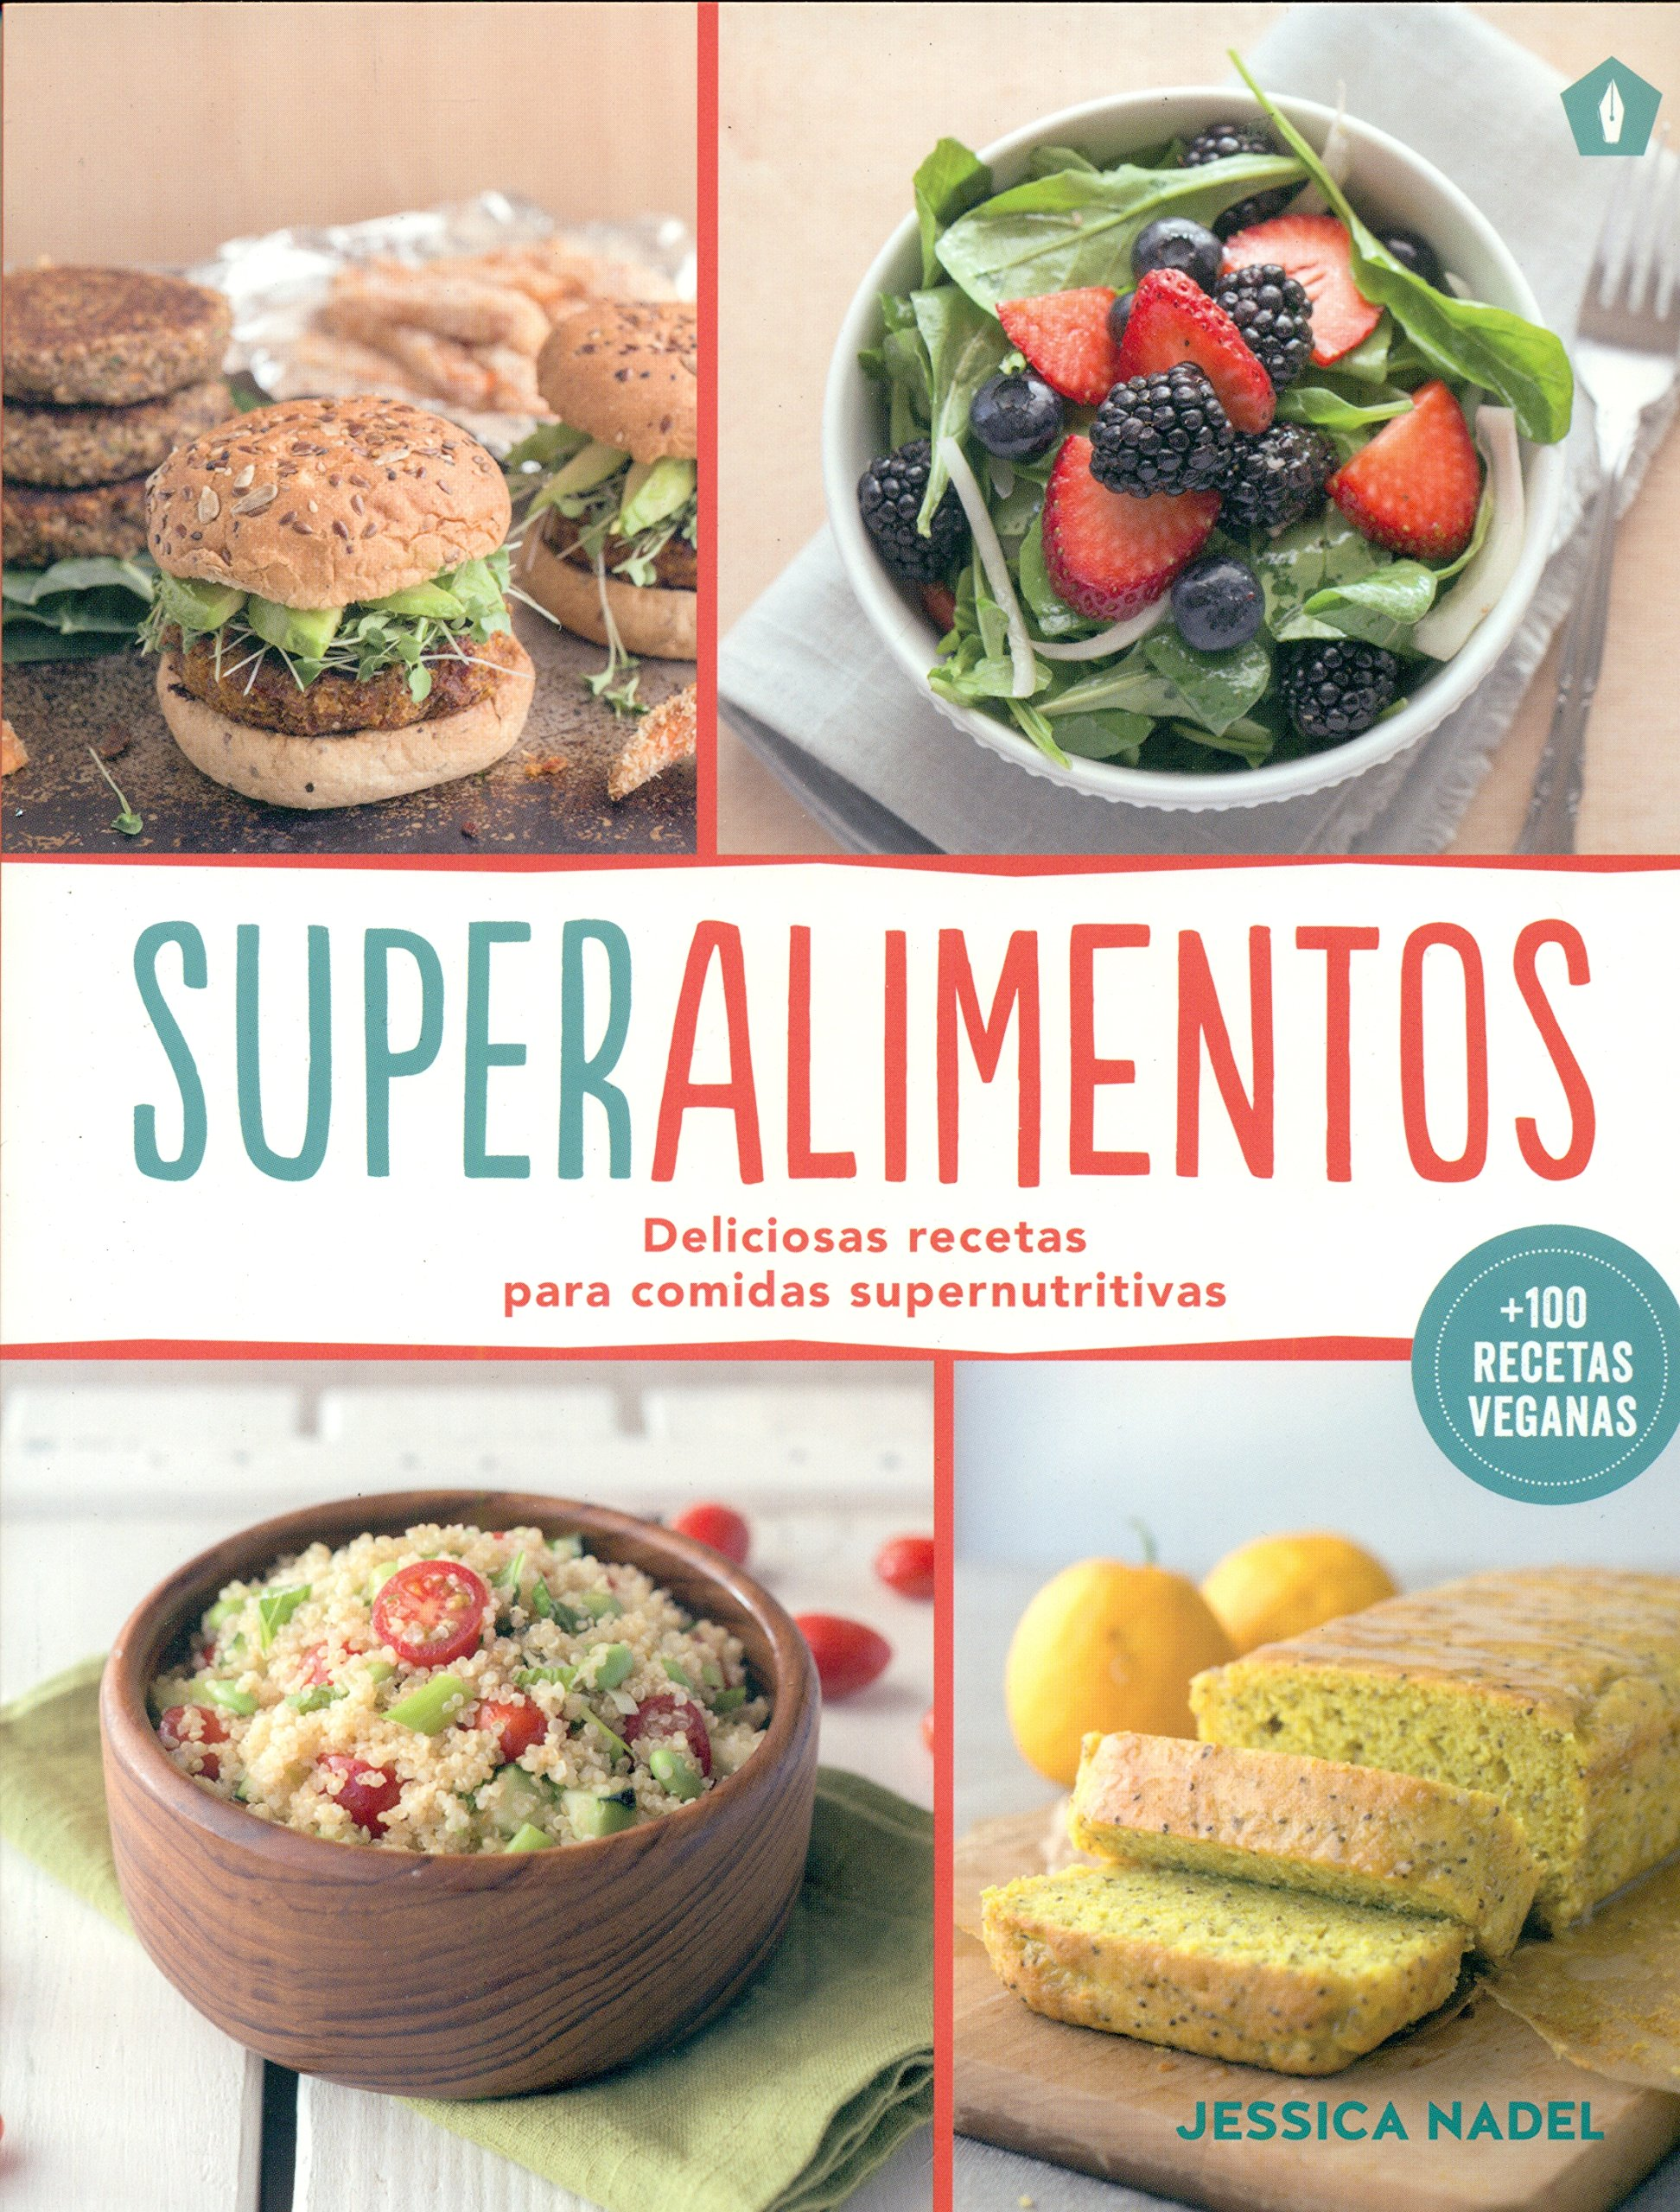 Superalimentos (Spanish Edition) (Spanish) Paperback – September 1, 2016